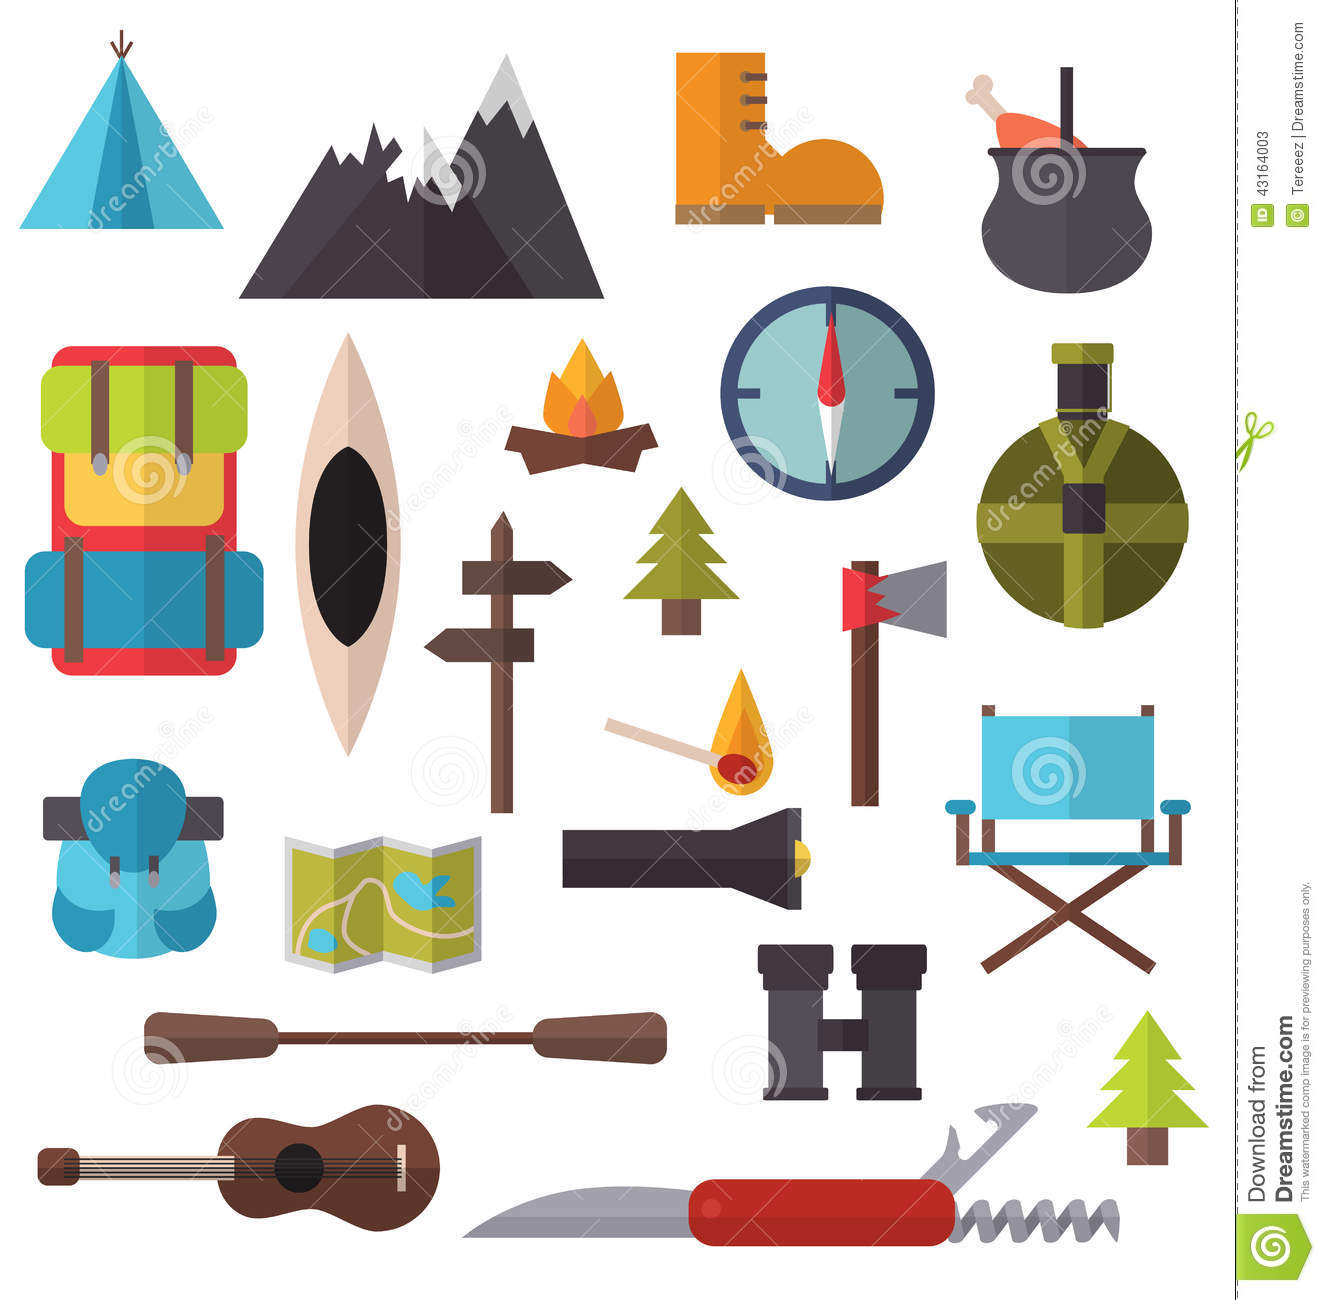 Hiking clipart camping gear Art Clip gear Equipment Hiking